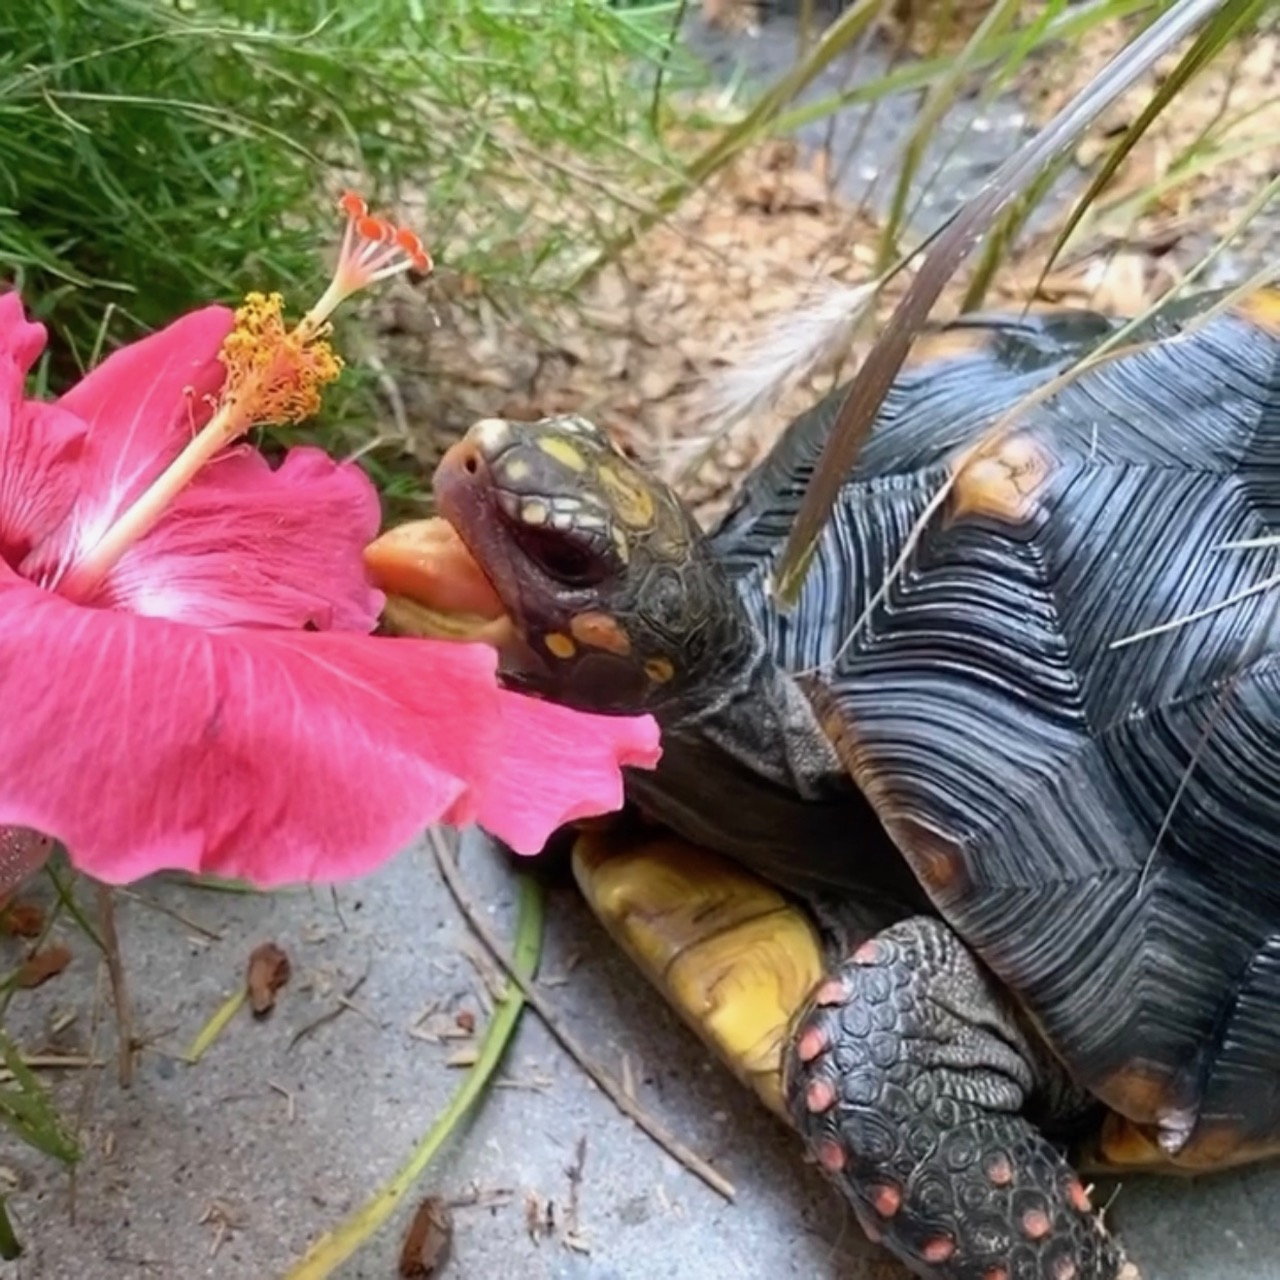 redfoot tortoise eats hibiscus flower